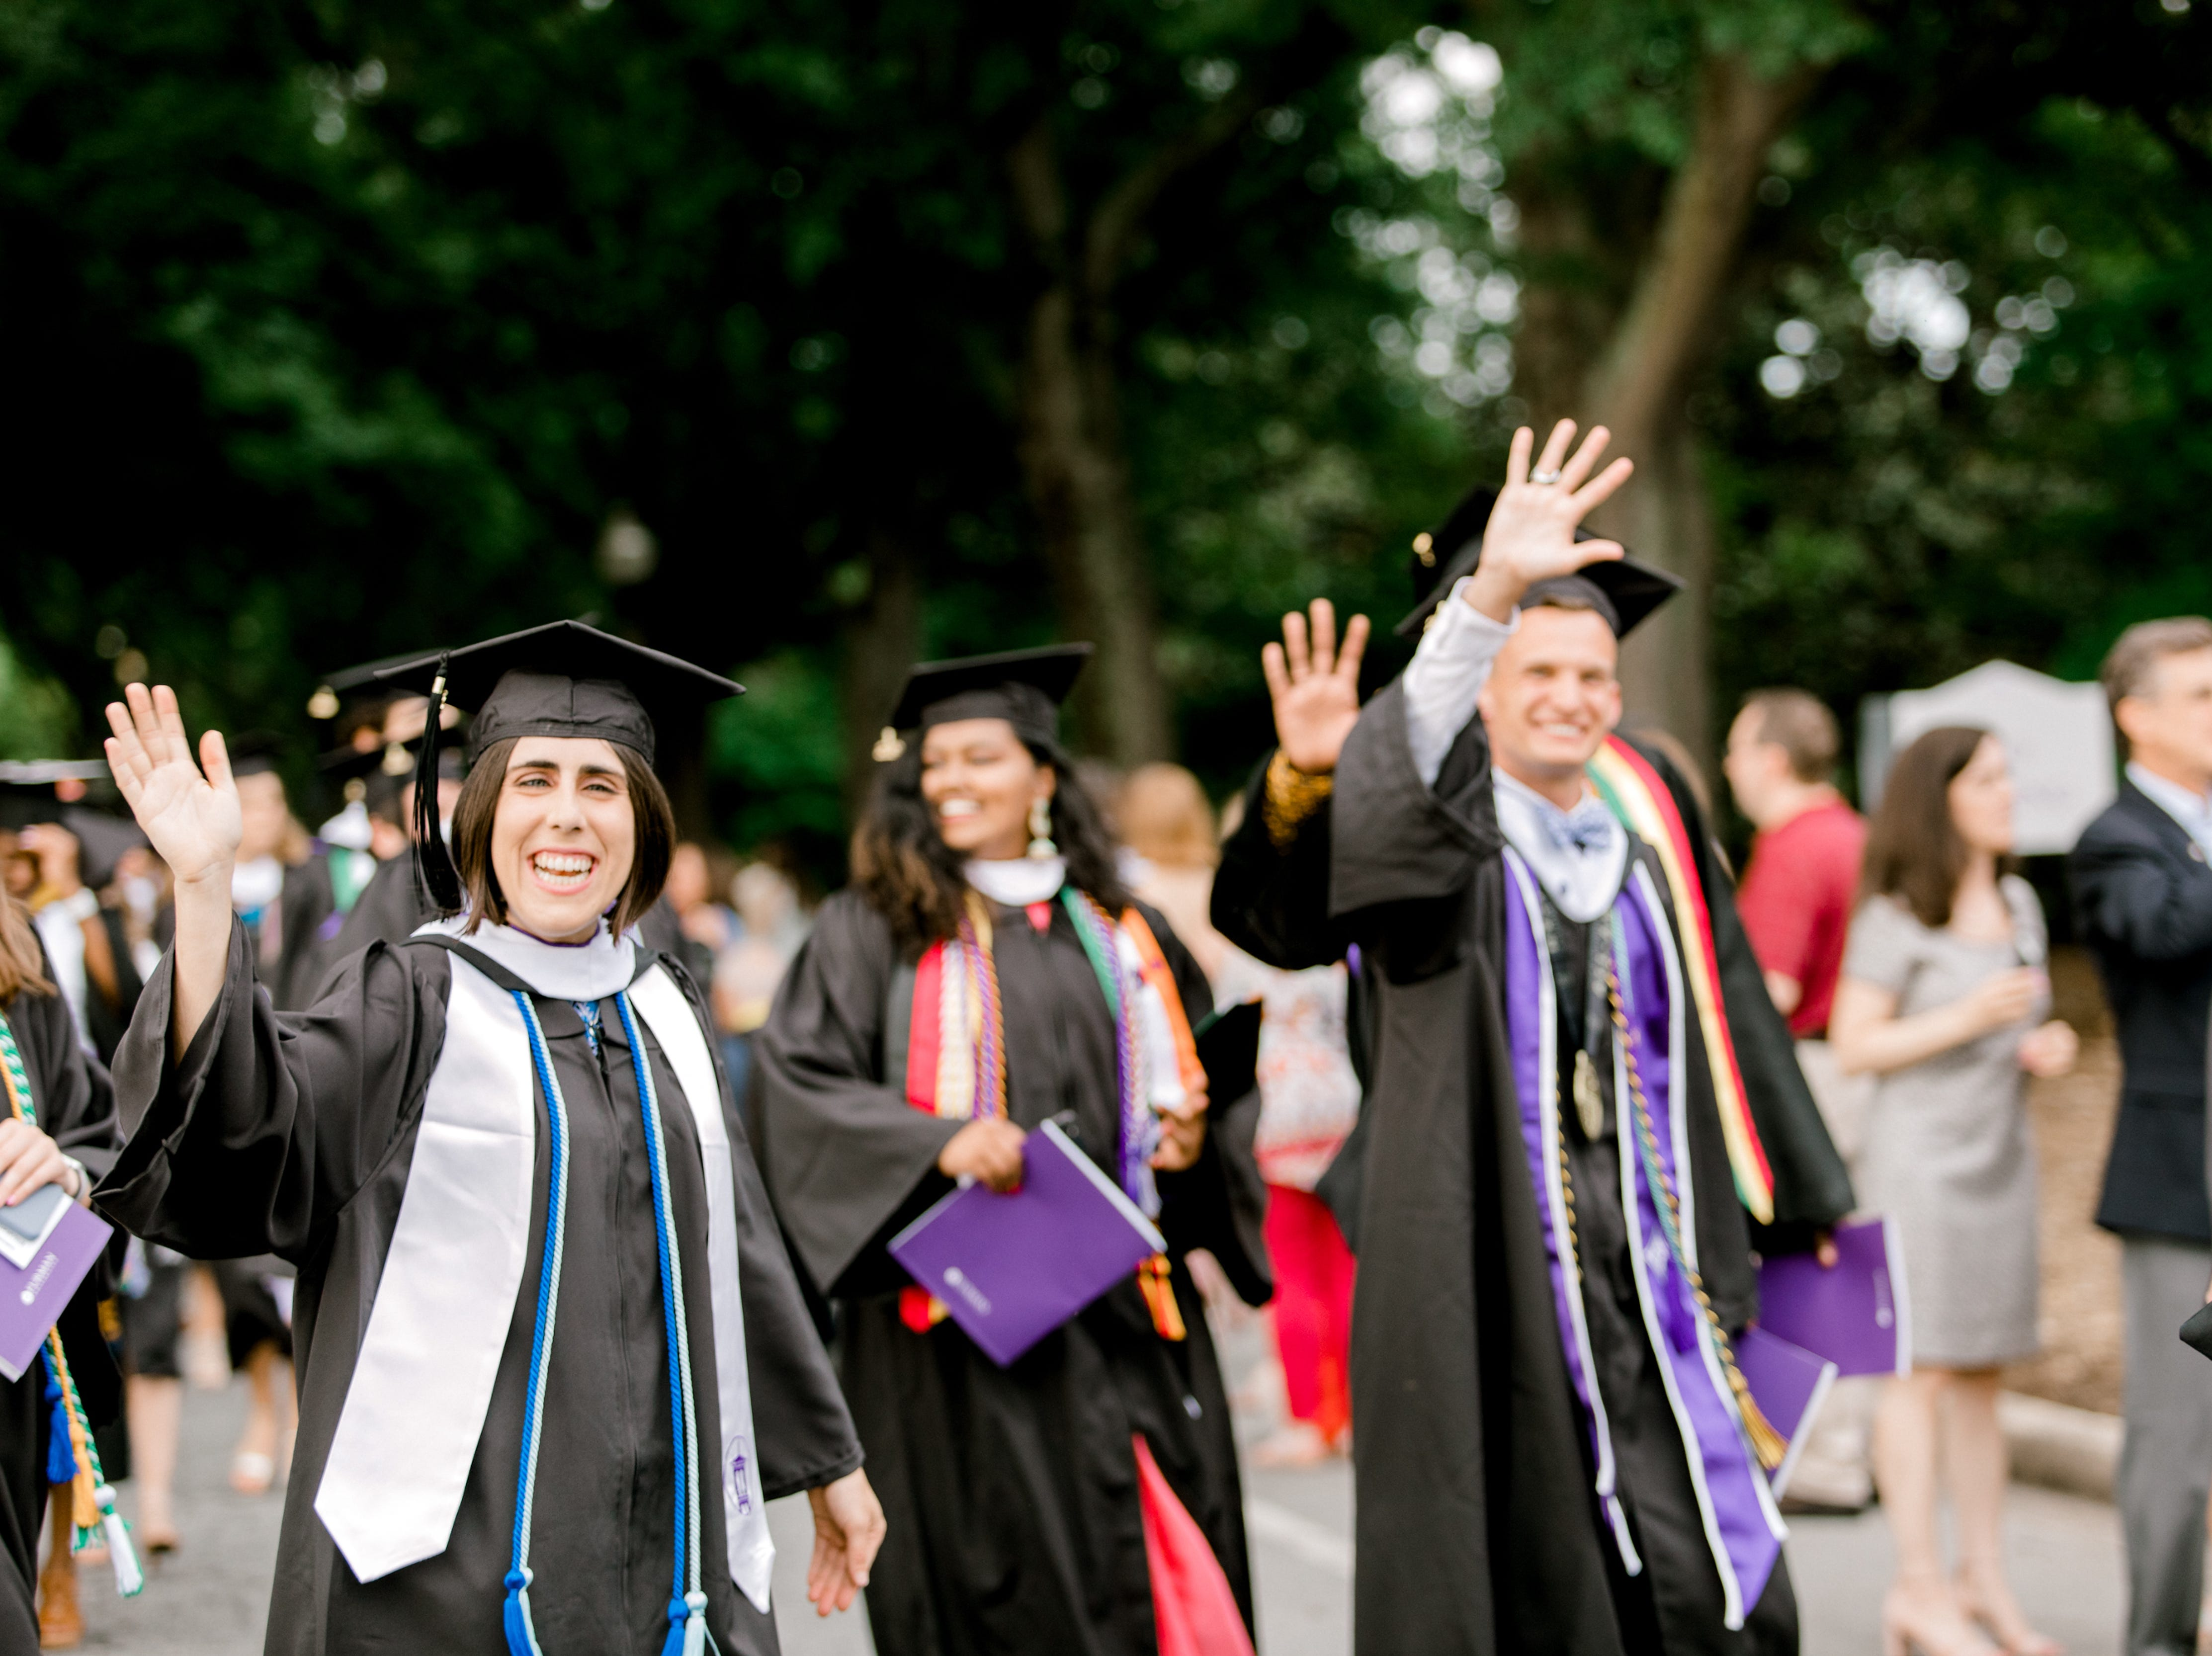 Furman University held commencement ceremonies at Timmons Arena in Greenville on Saturday, May 11, 2019.